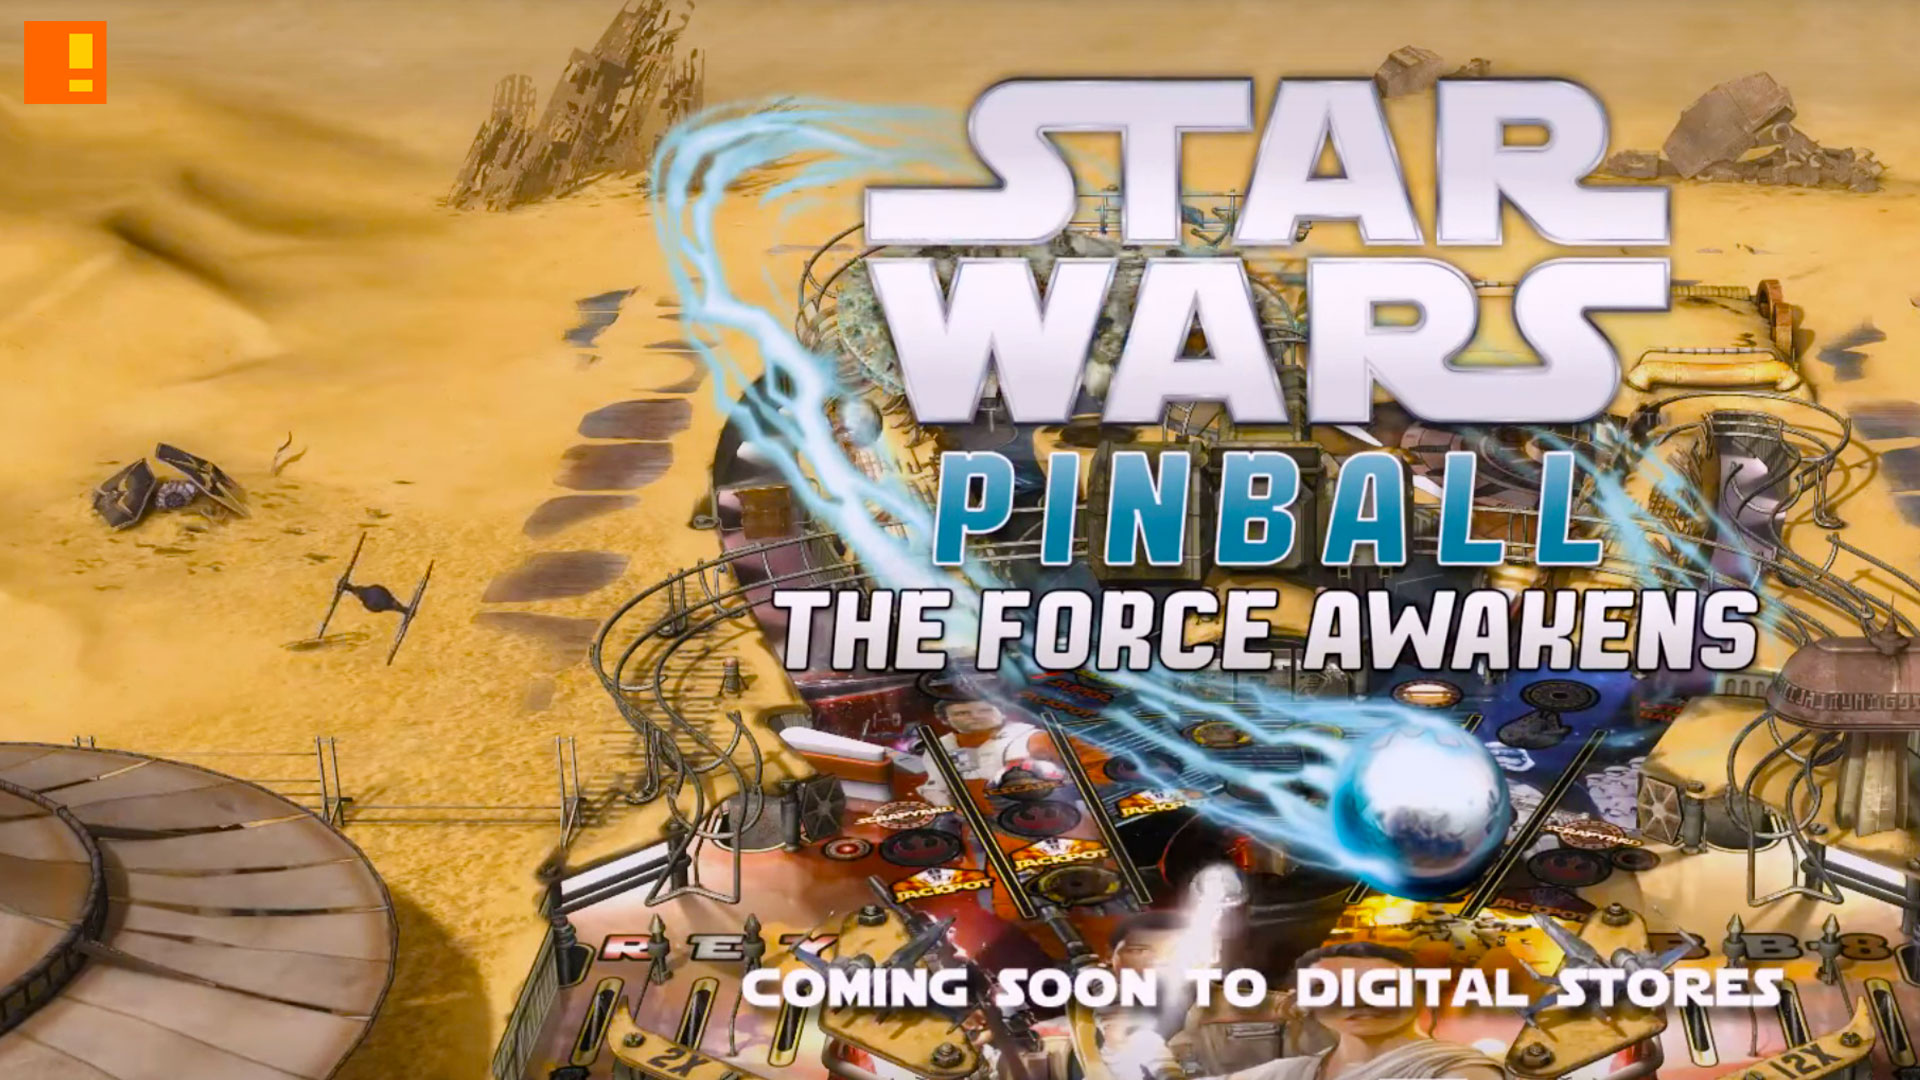 star wars pinball the force awakens. zen studios, lucasfilm, disney. the action pixel. @theactionpixel. #EntertainmentOnTAP